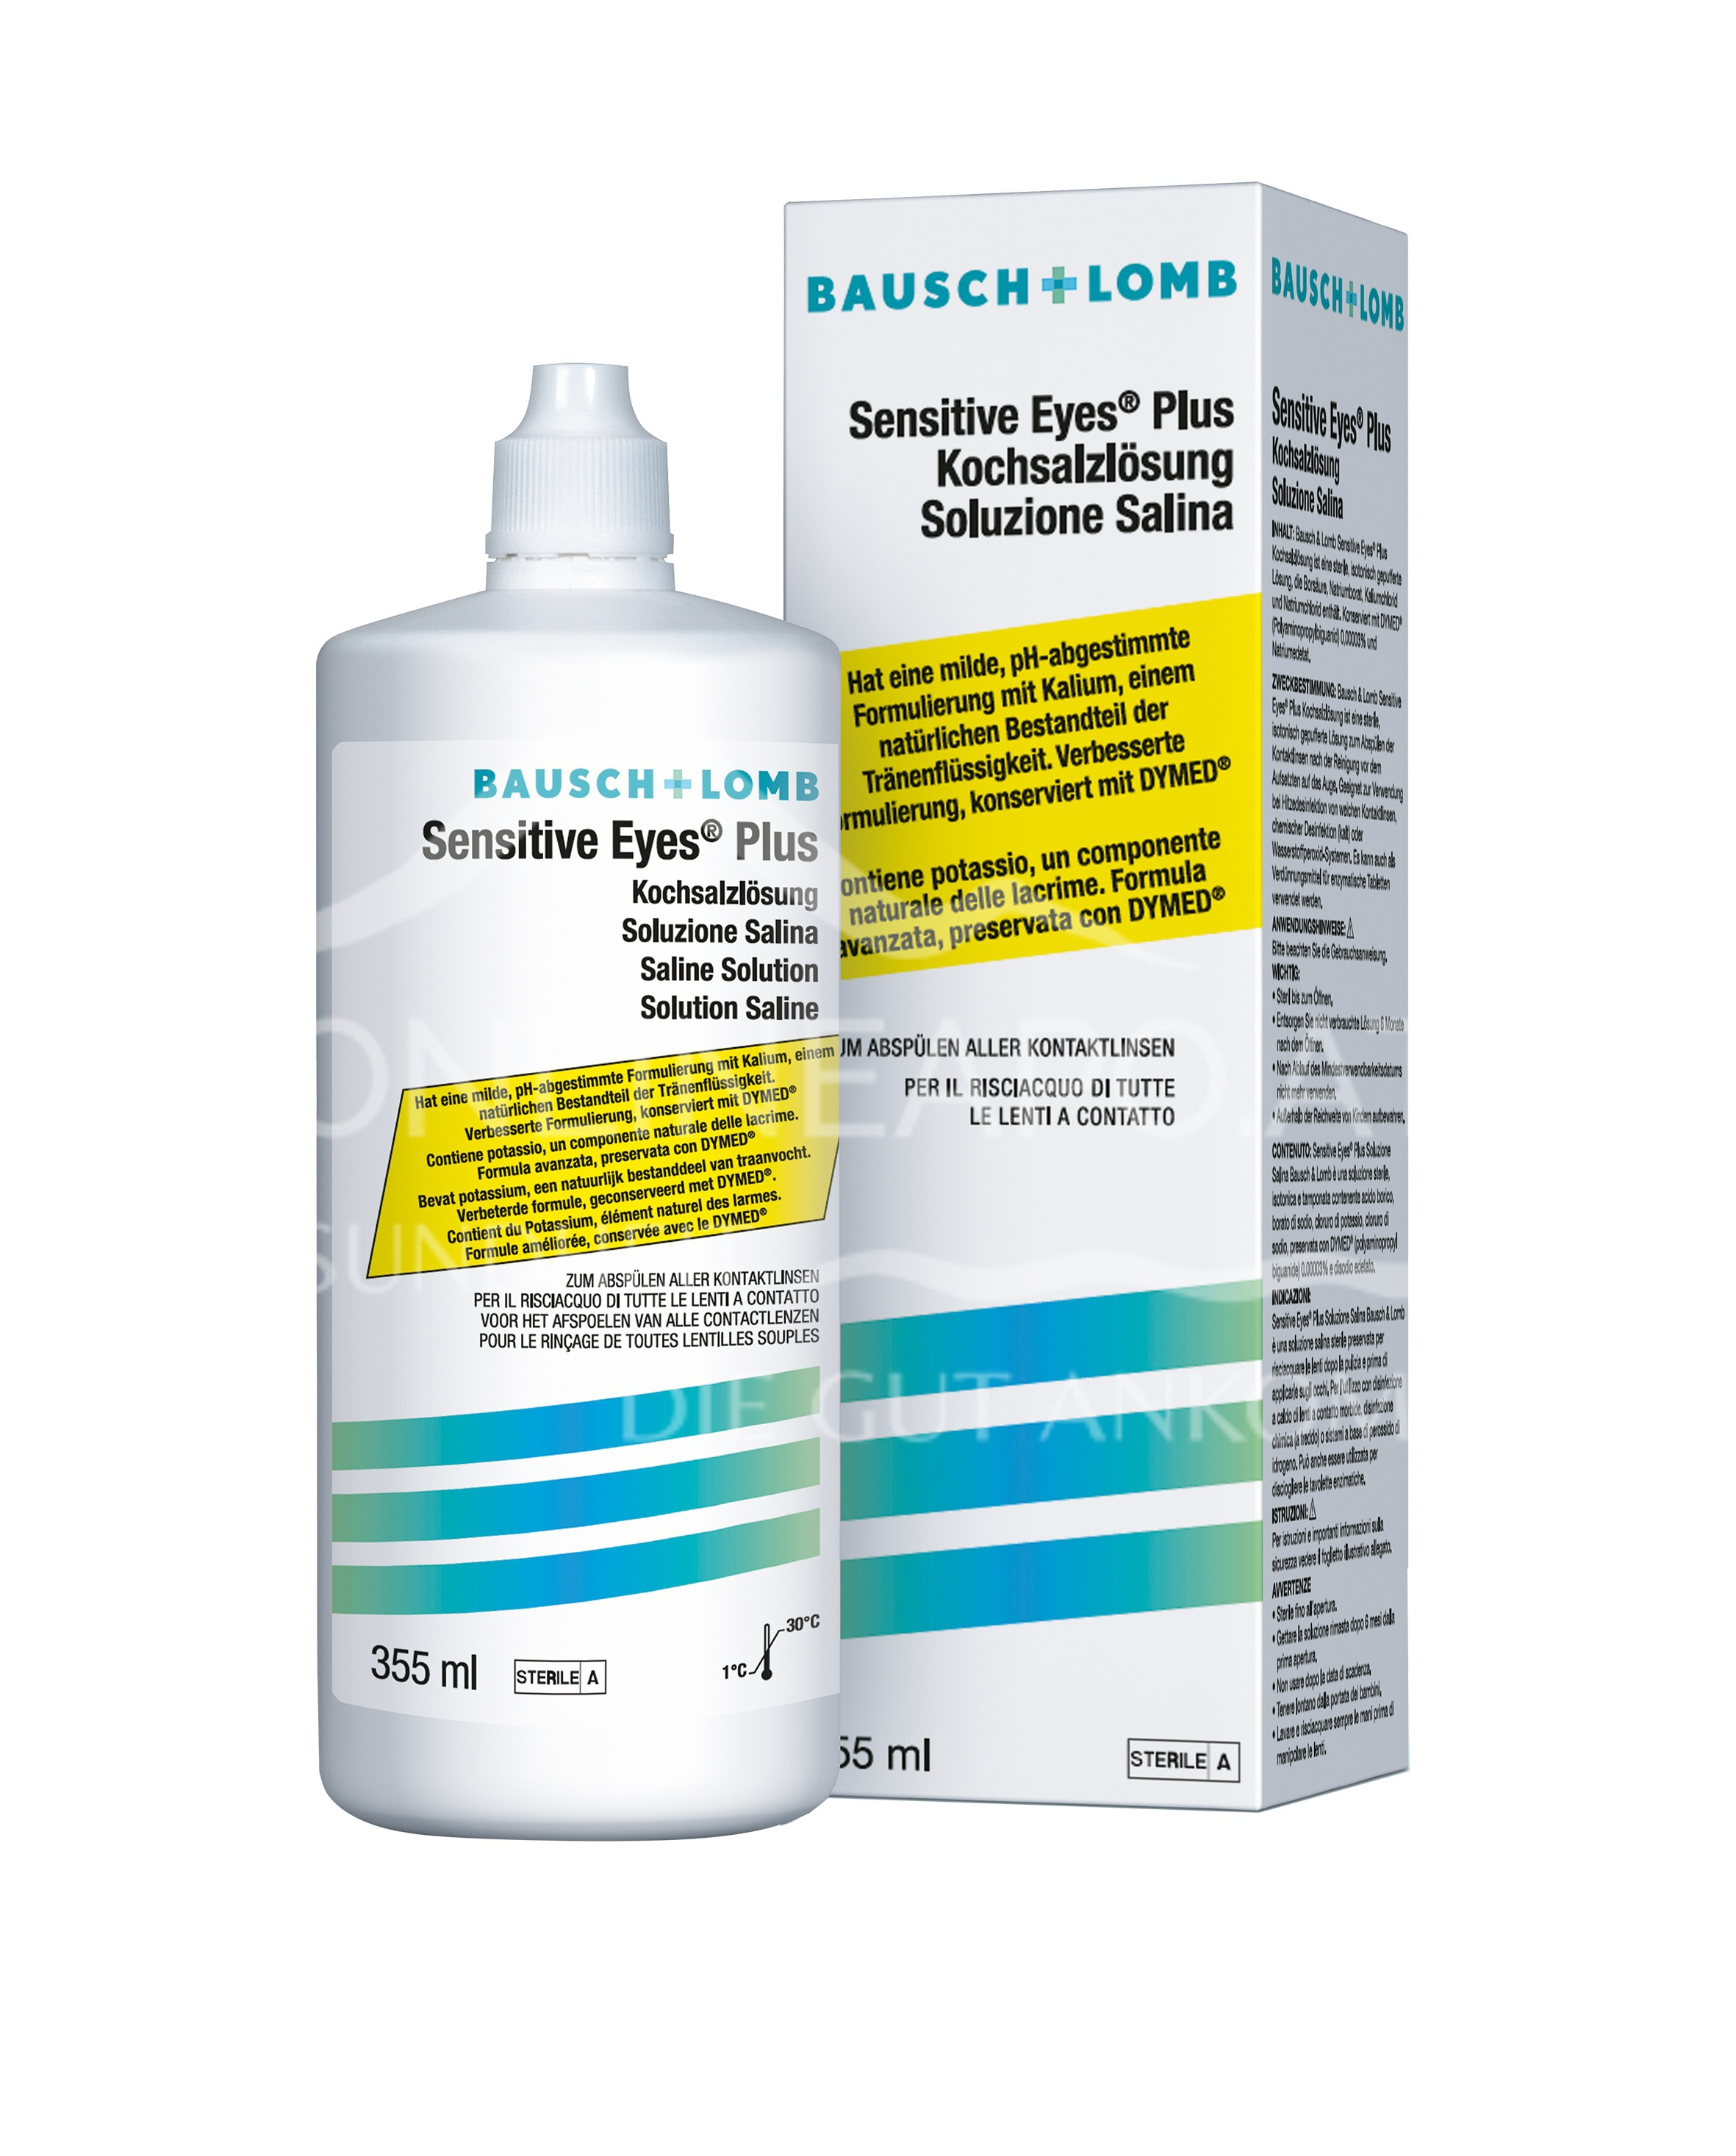 Bausch & Lomb Sensitive Eyes Plus Kochsalzlösung